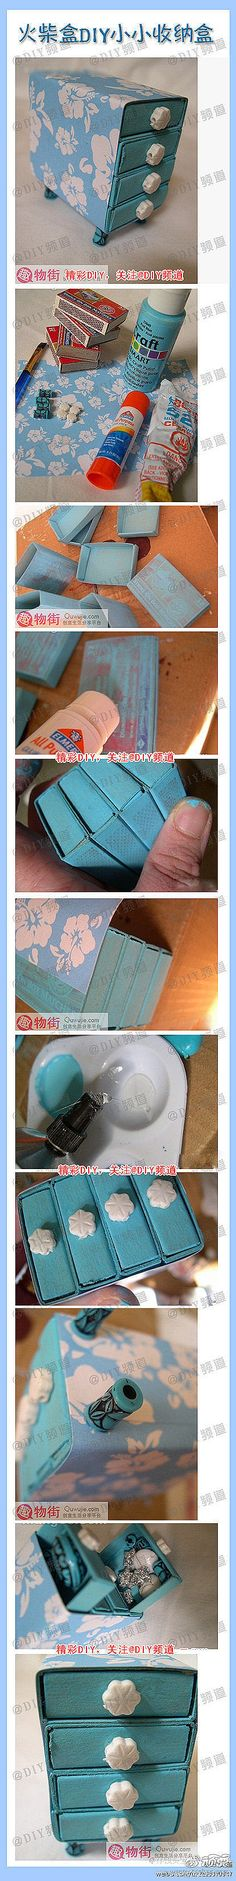 手工DIY jewelry box. Use large match boxes. Paint and glue together. Cover with paper of your choice. Glue on tiny knobs/beads for drawer pulls and glue large beads on bottom for legs. You could line the drawers with velvet etc.